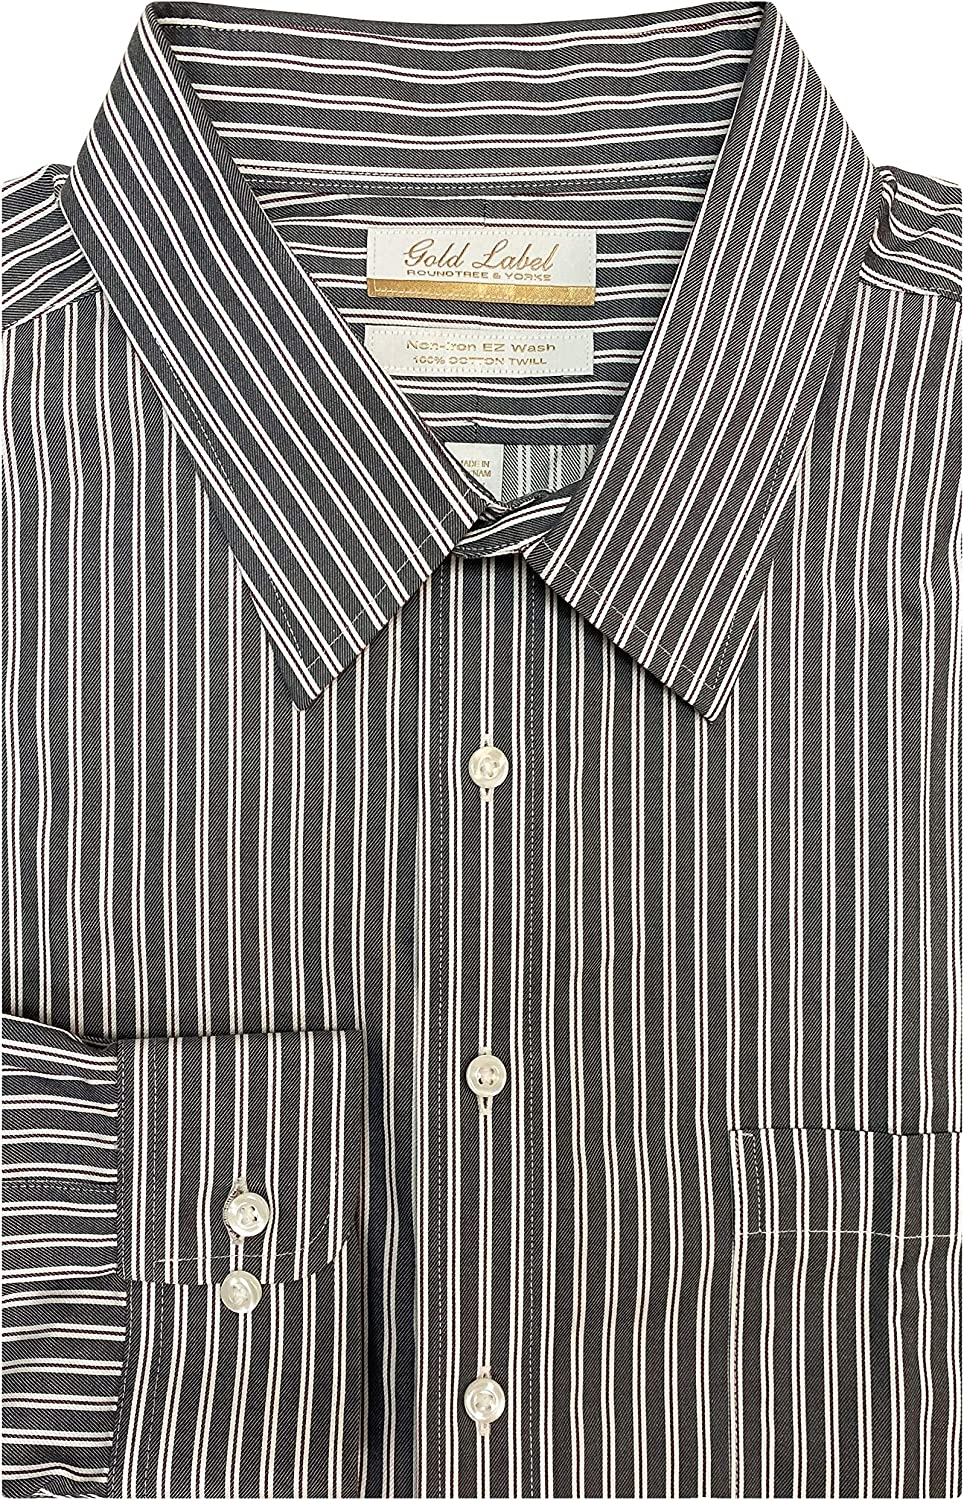 Gold Label Men's Big Max 76% OFF and Al sold out. Tall Non-Iron Wrinkle-Resistant Long Sl